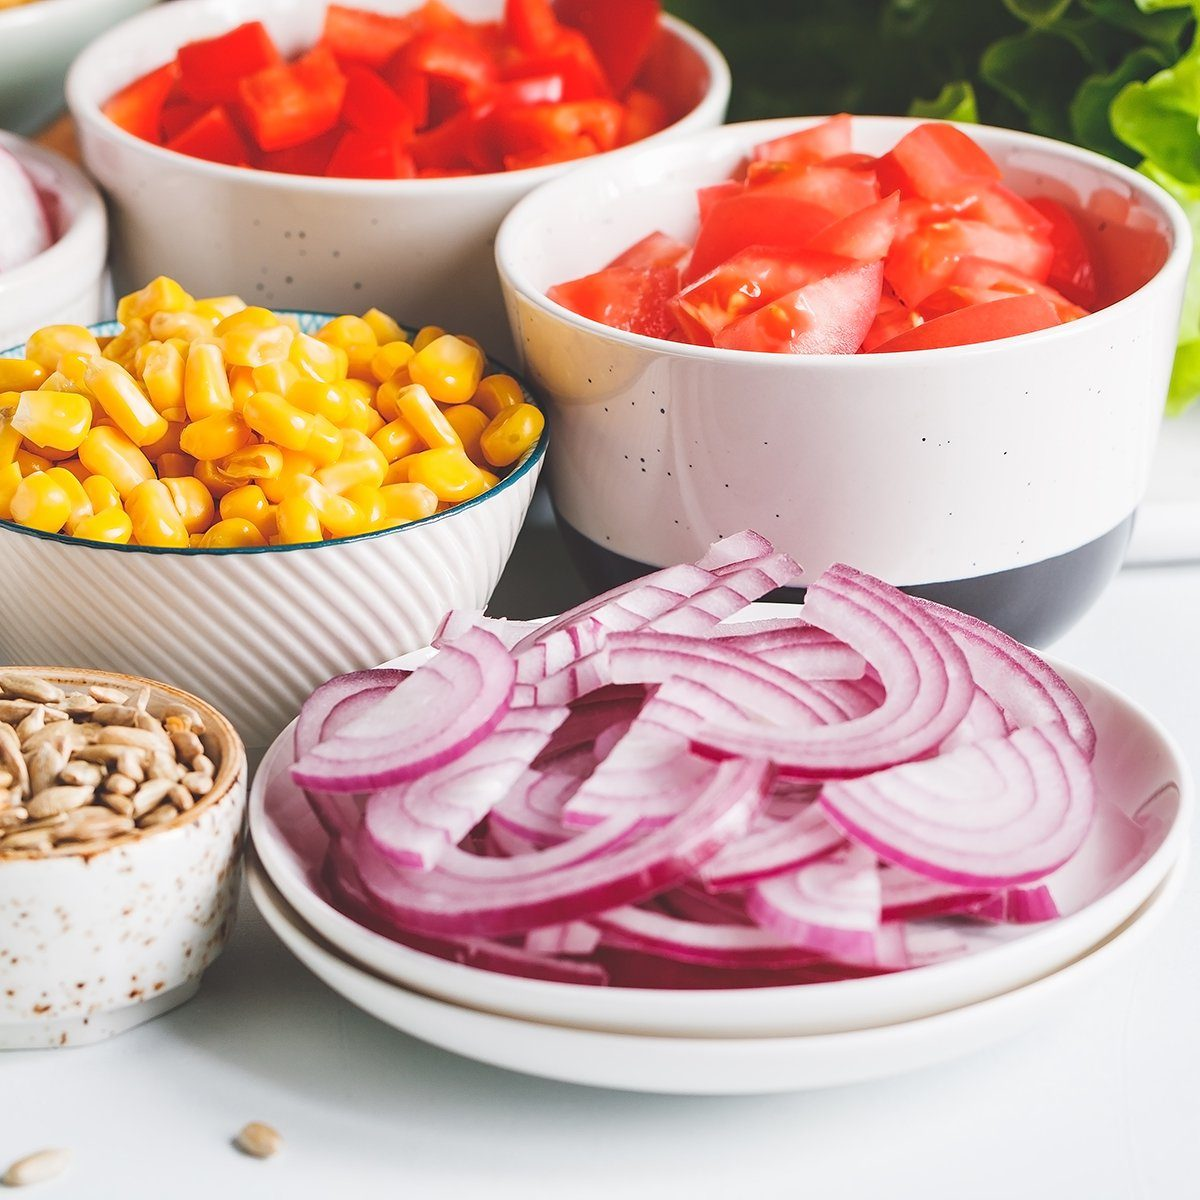 Assortment ingredients for healthy vegetarian salad in different portion bowls on a table.